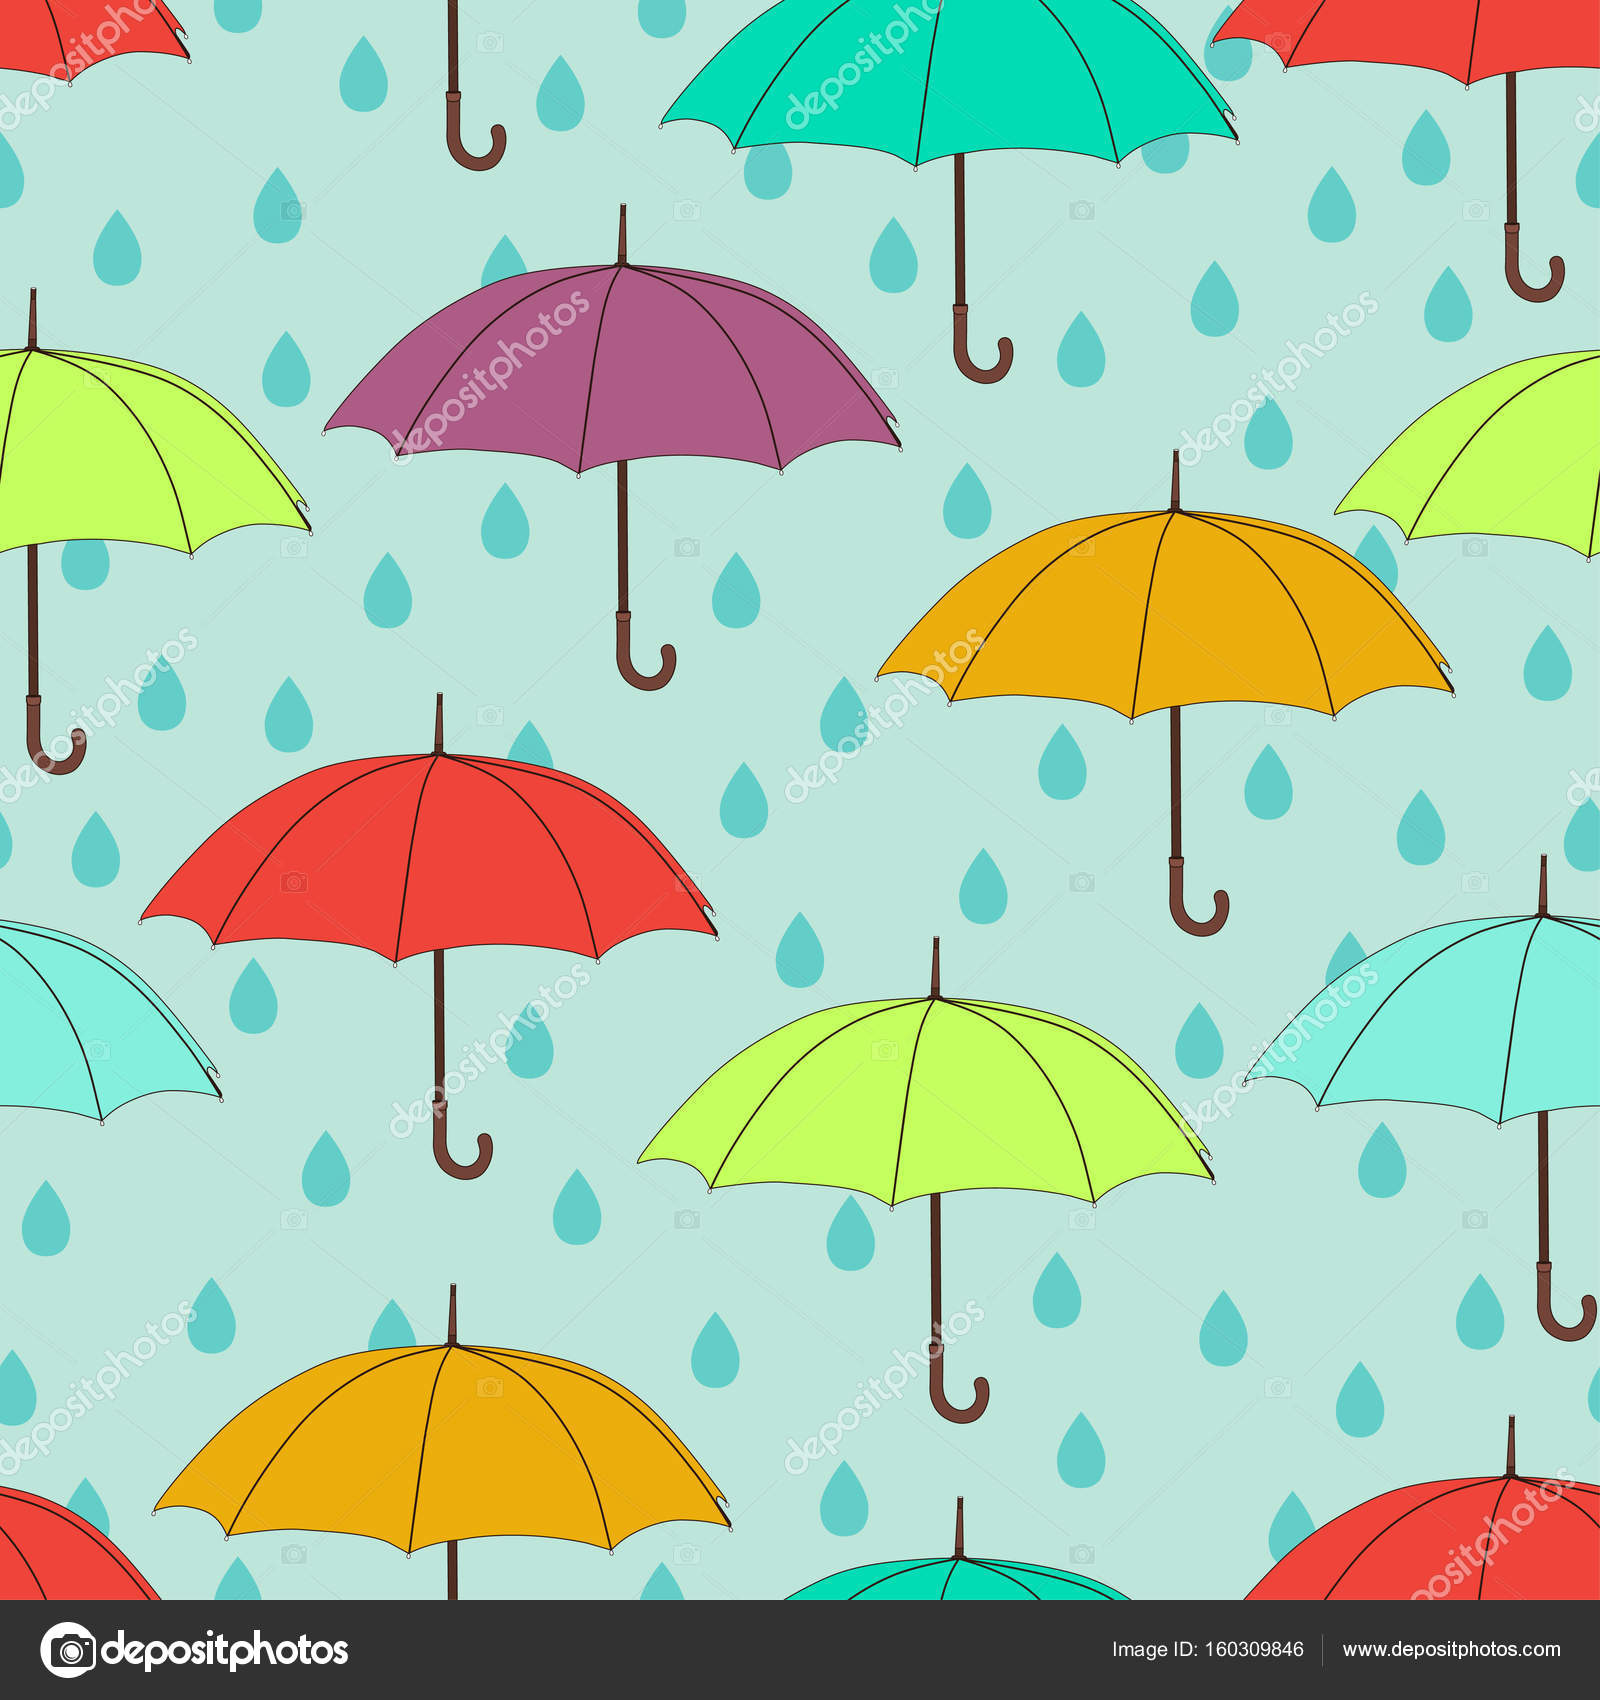 Umbrellas Seamless Pattern Vector Background Multicolored Bright And Raindrops On A Blue